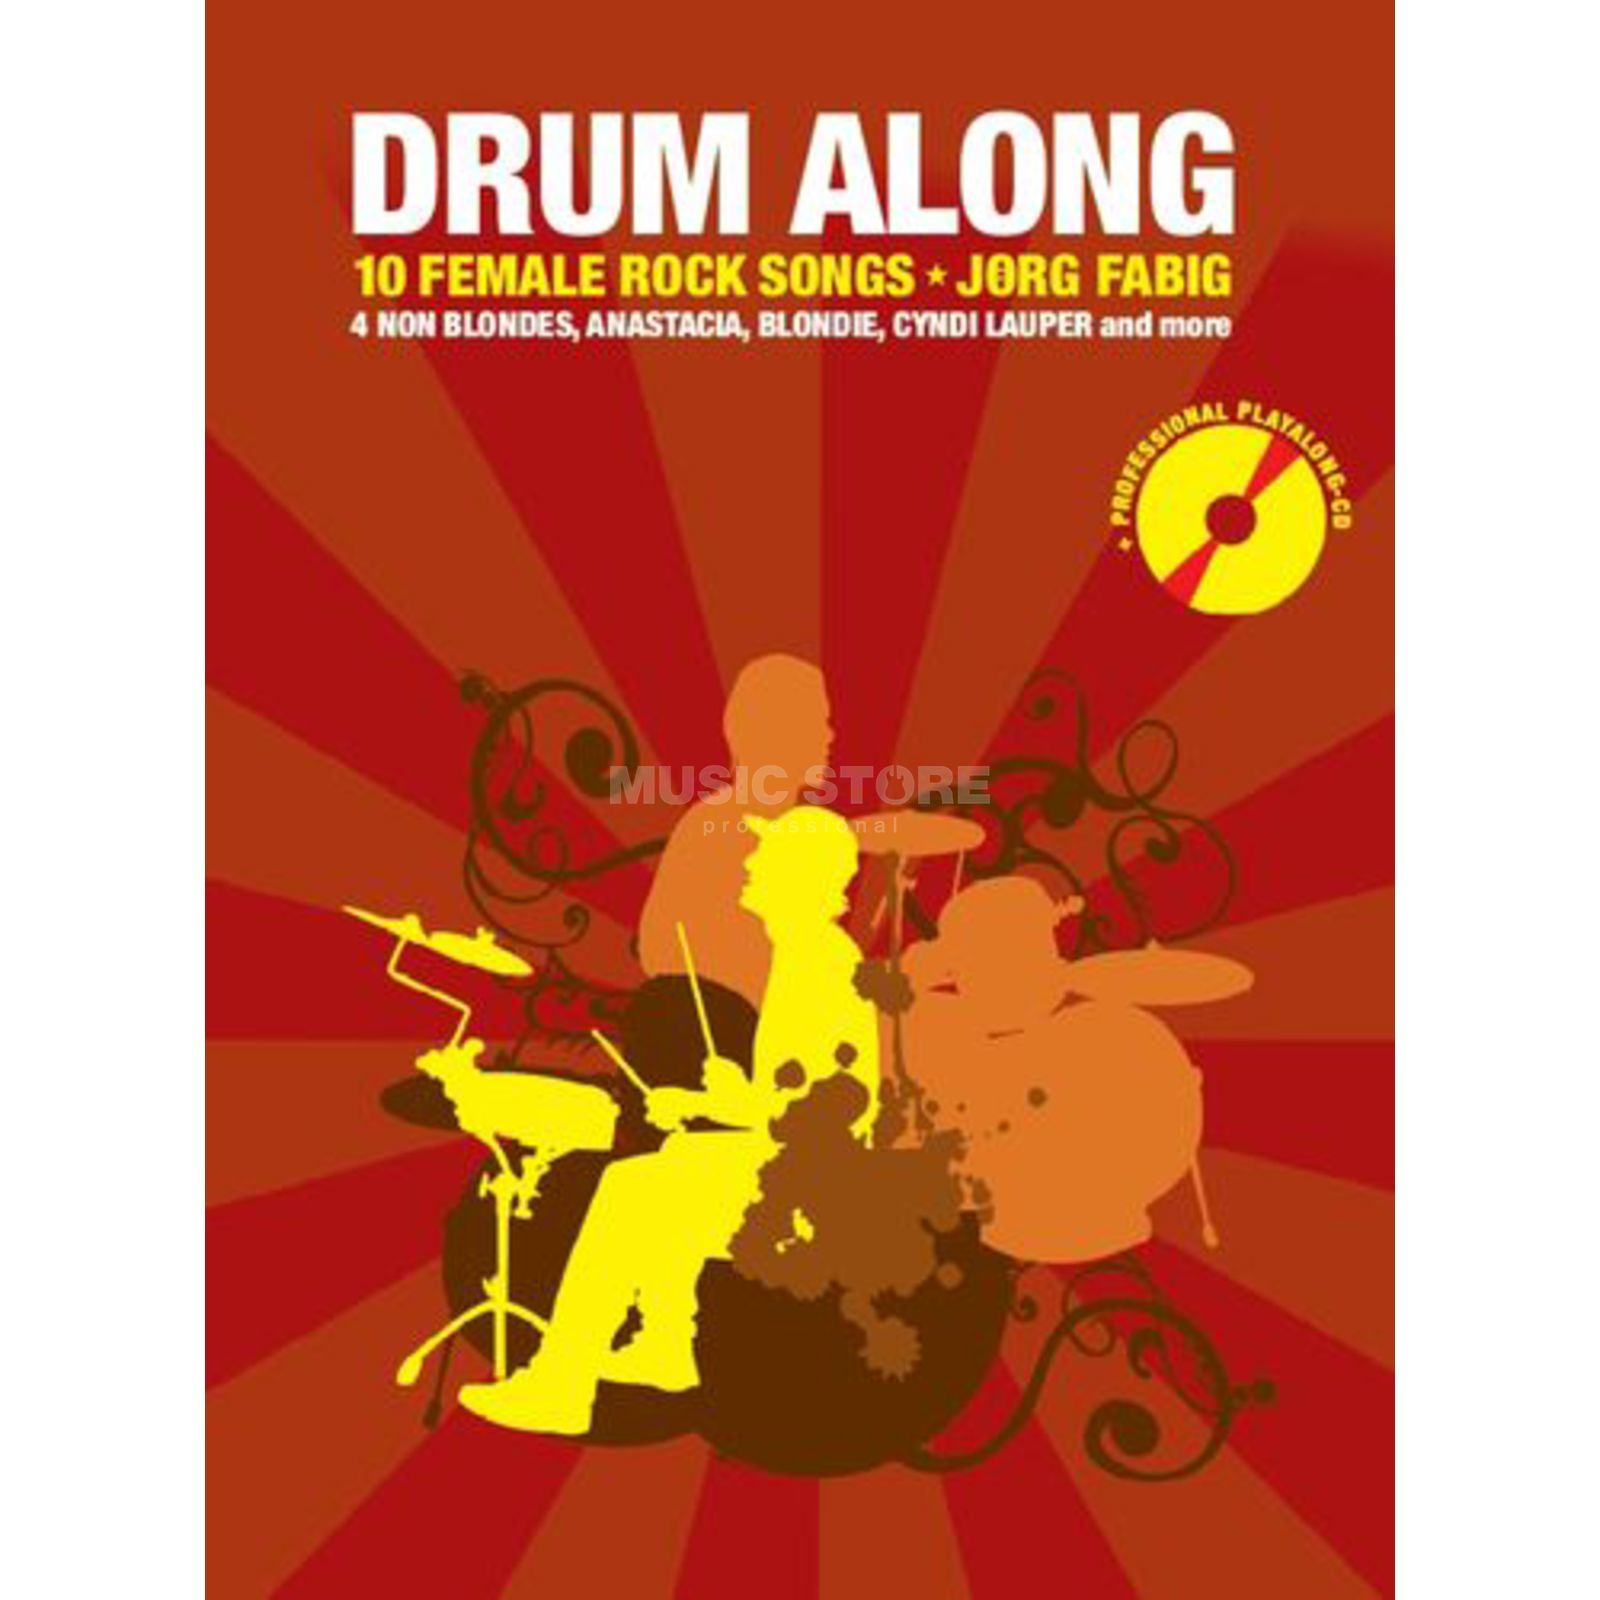 Bosworth Music Drum Along: 10 Female Rock Songs, Jörg Fabig Produktbild